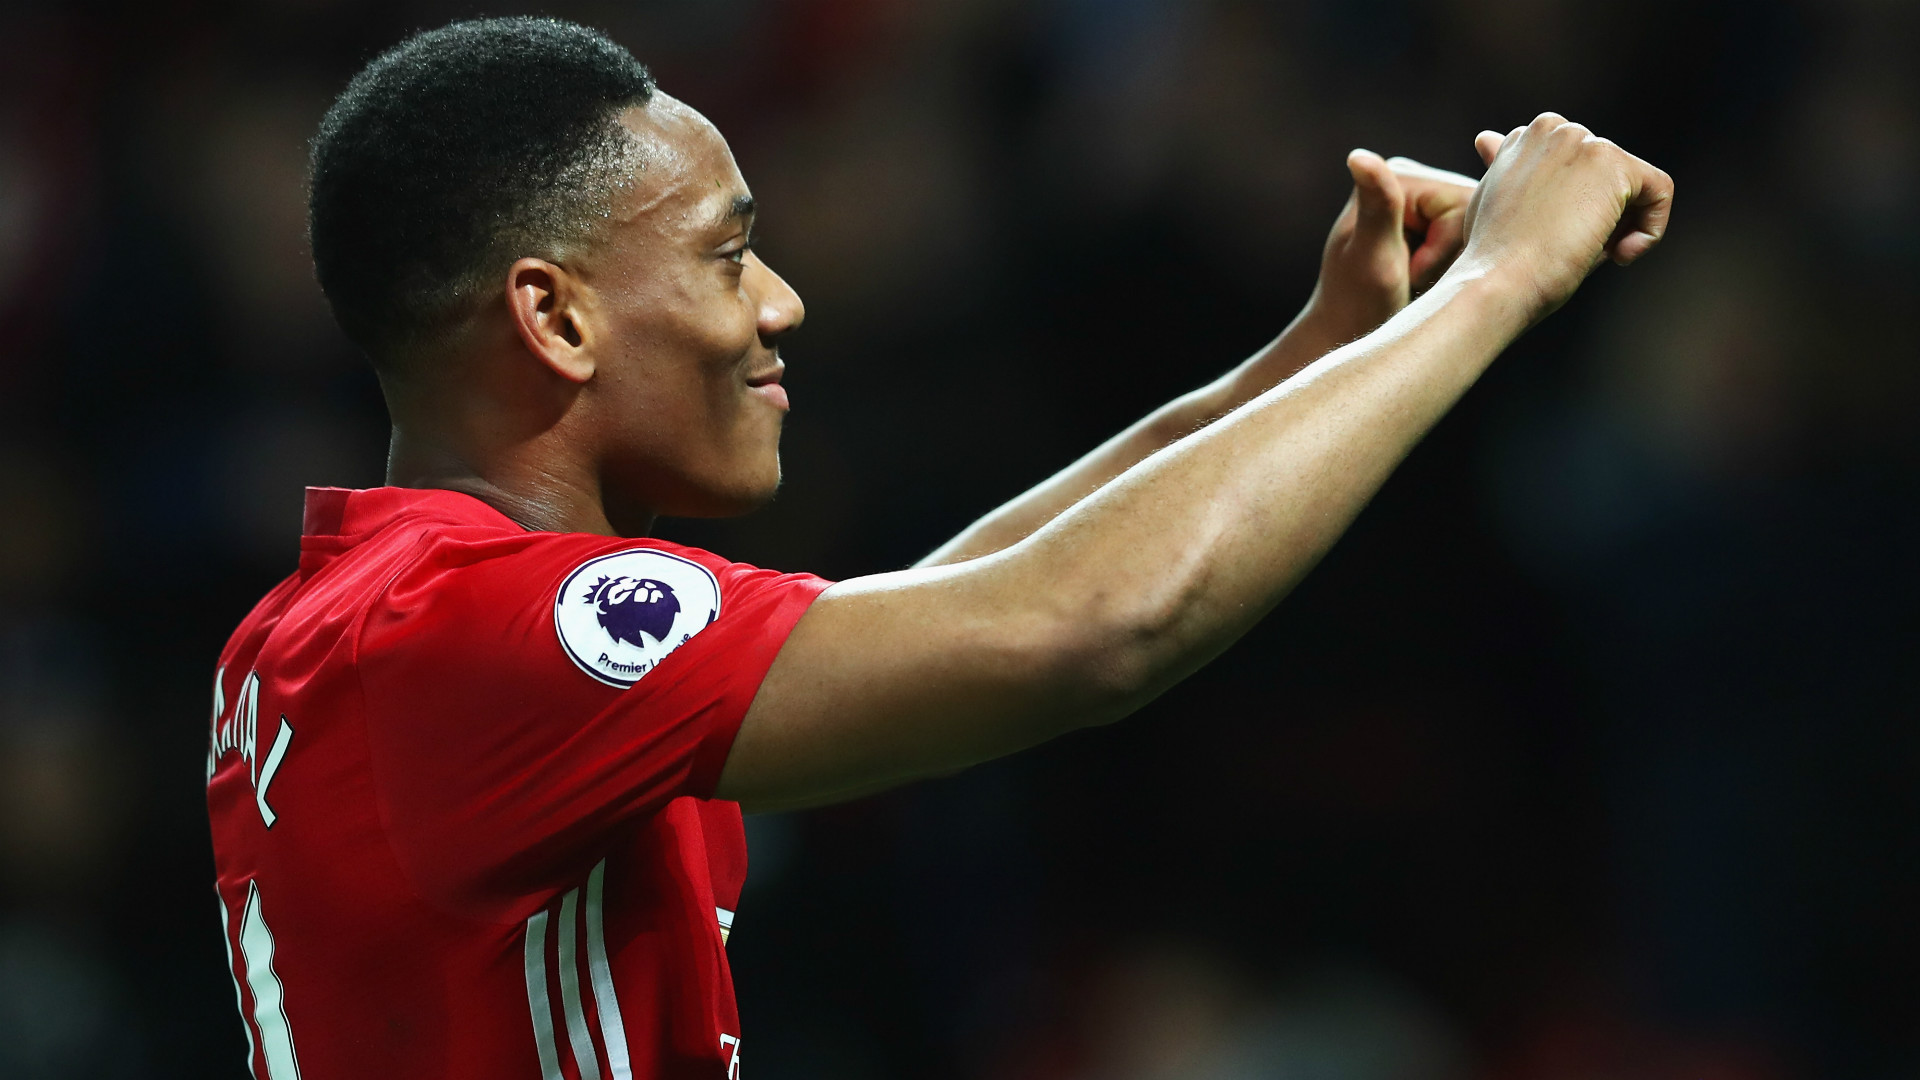 Anthony-martial-cropped_1gaeuk8tadxxs1ln43jfj0b6zv